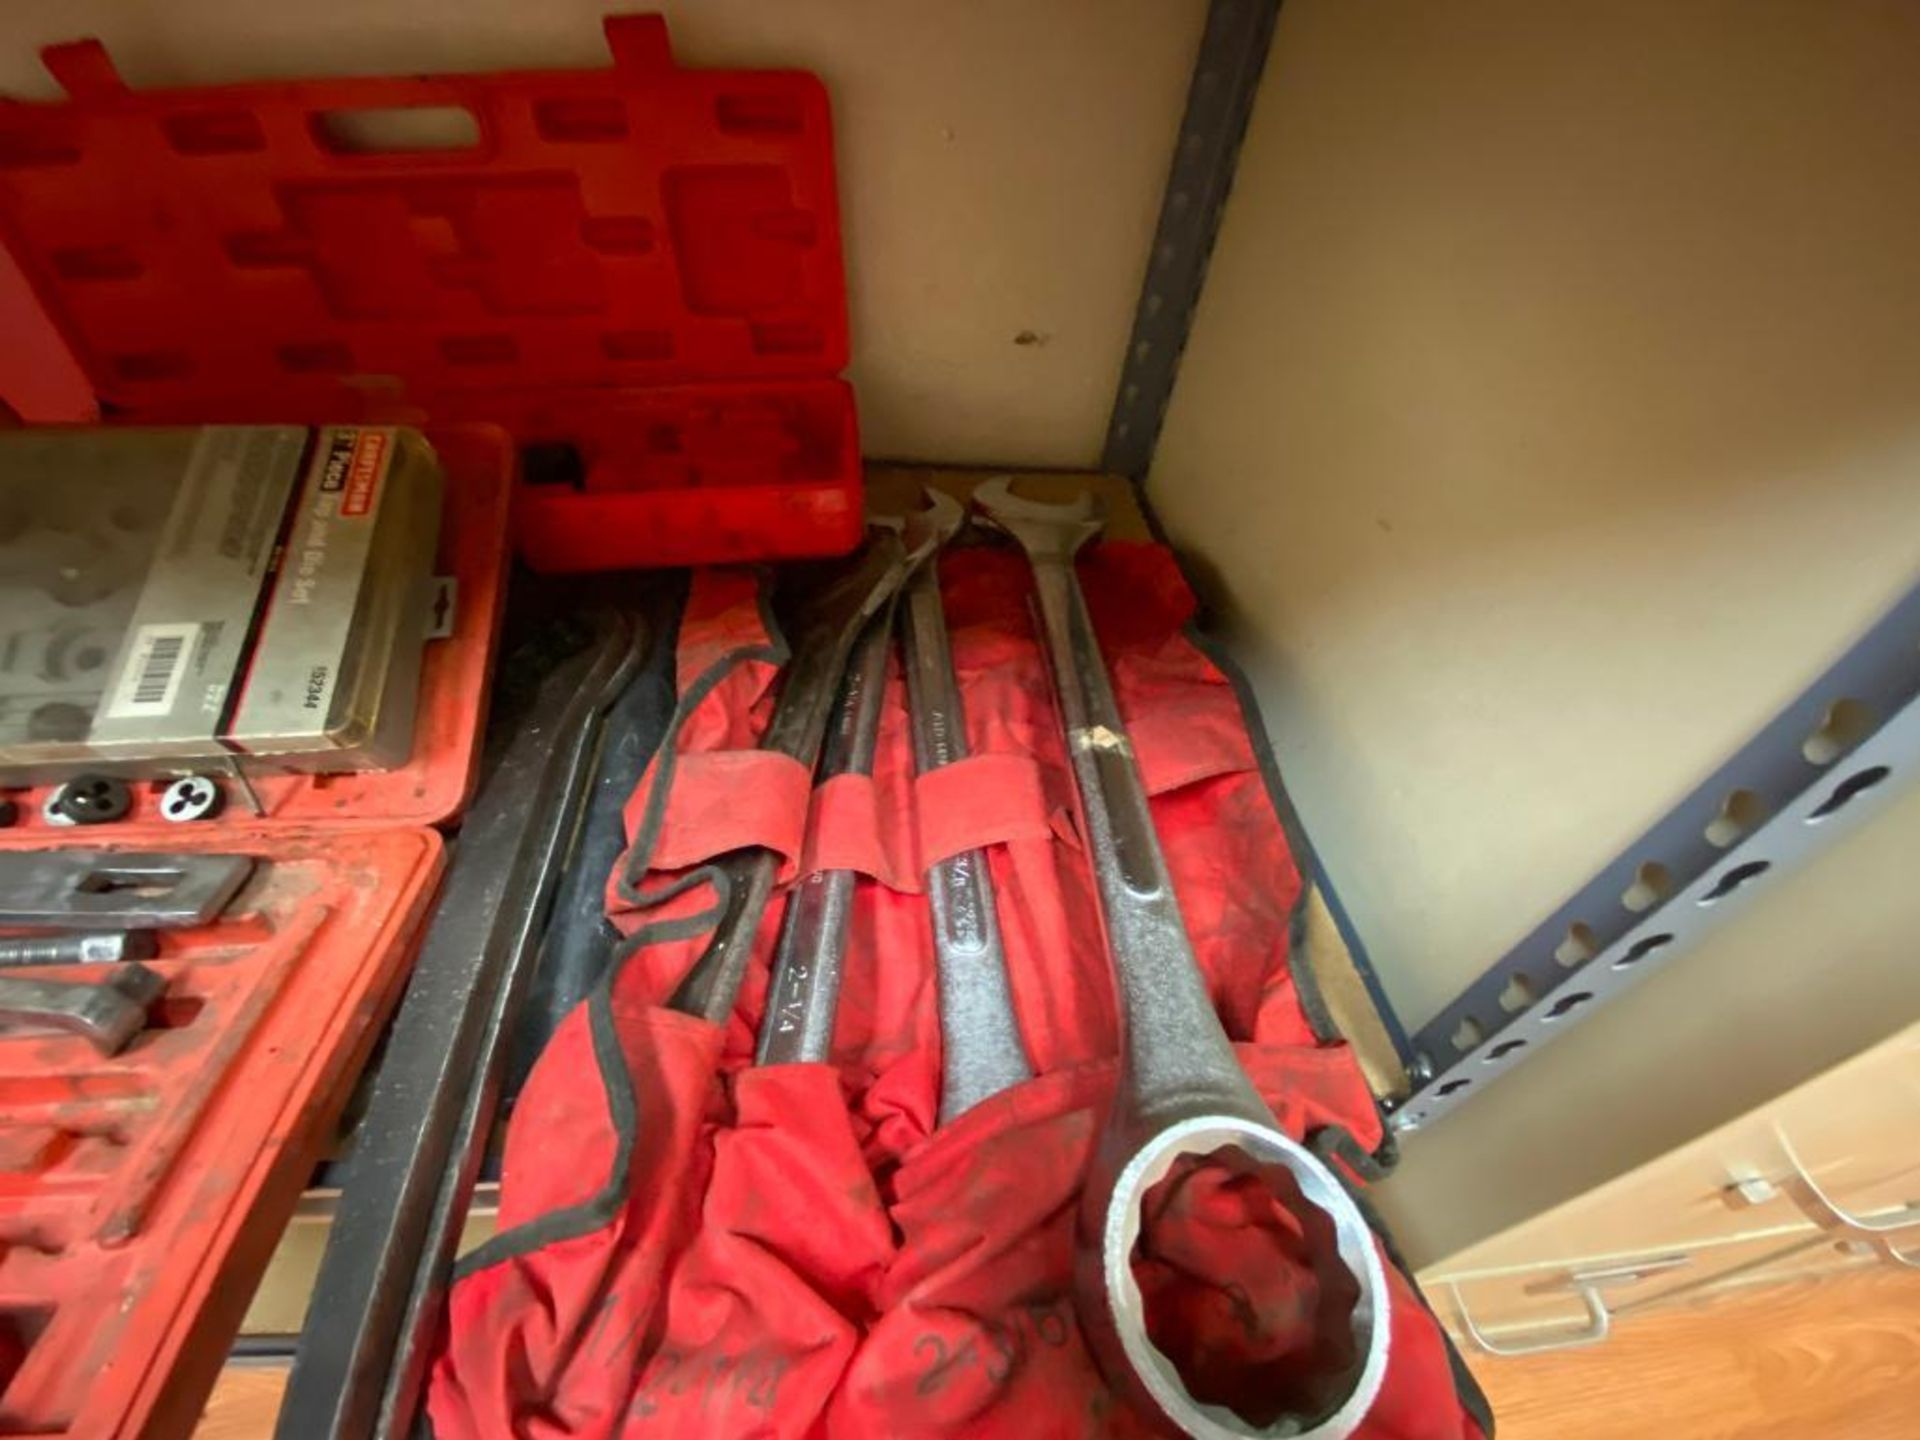 various tools includes bits, large wrenches, lockout tagout kit, grinder - Image 17 of 18